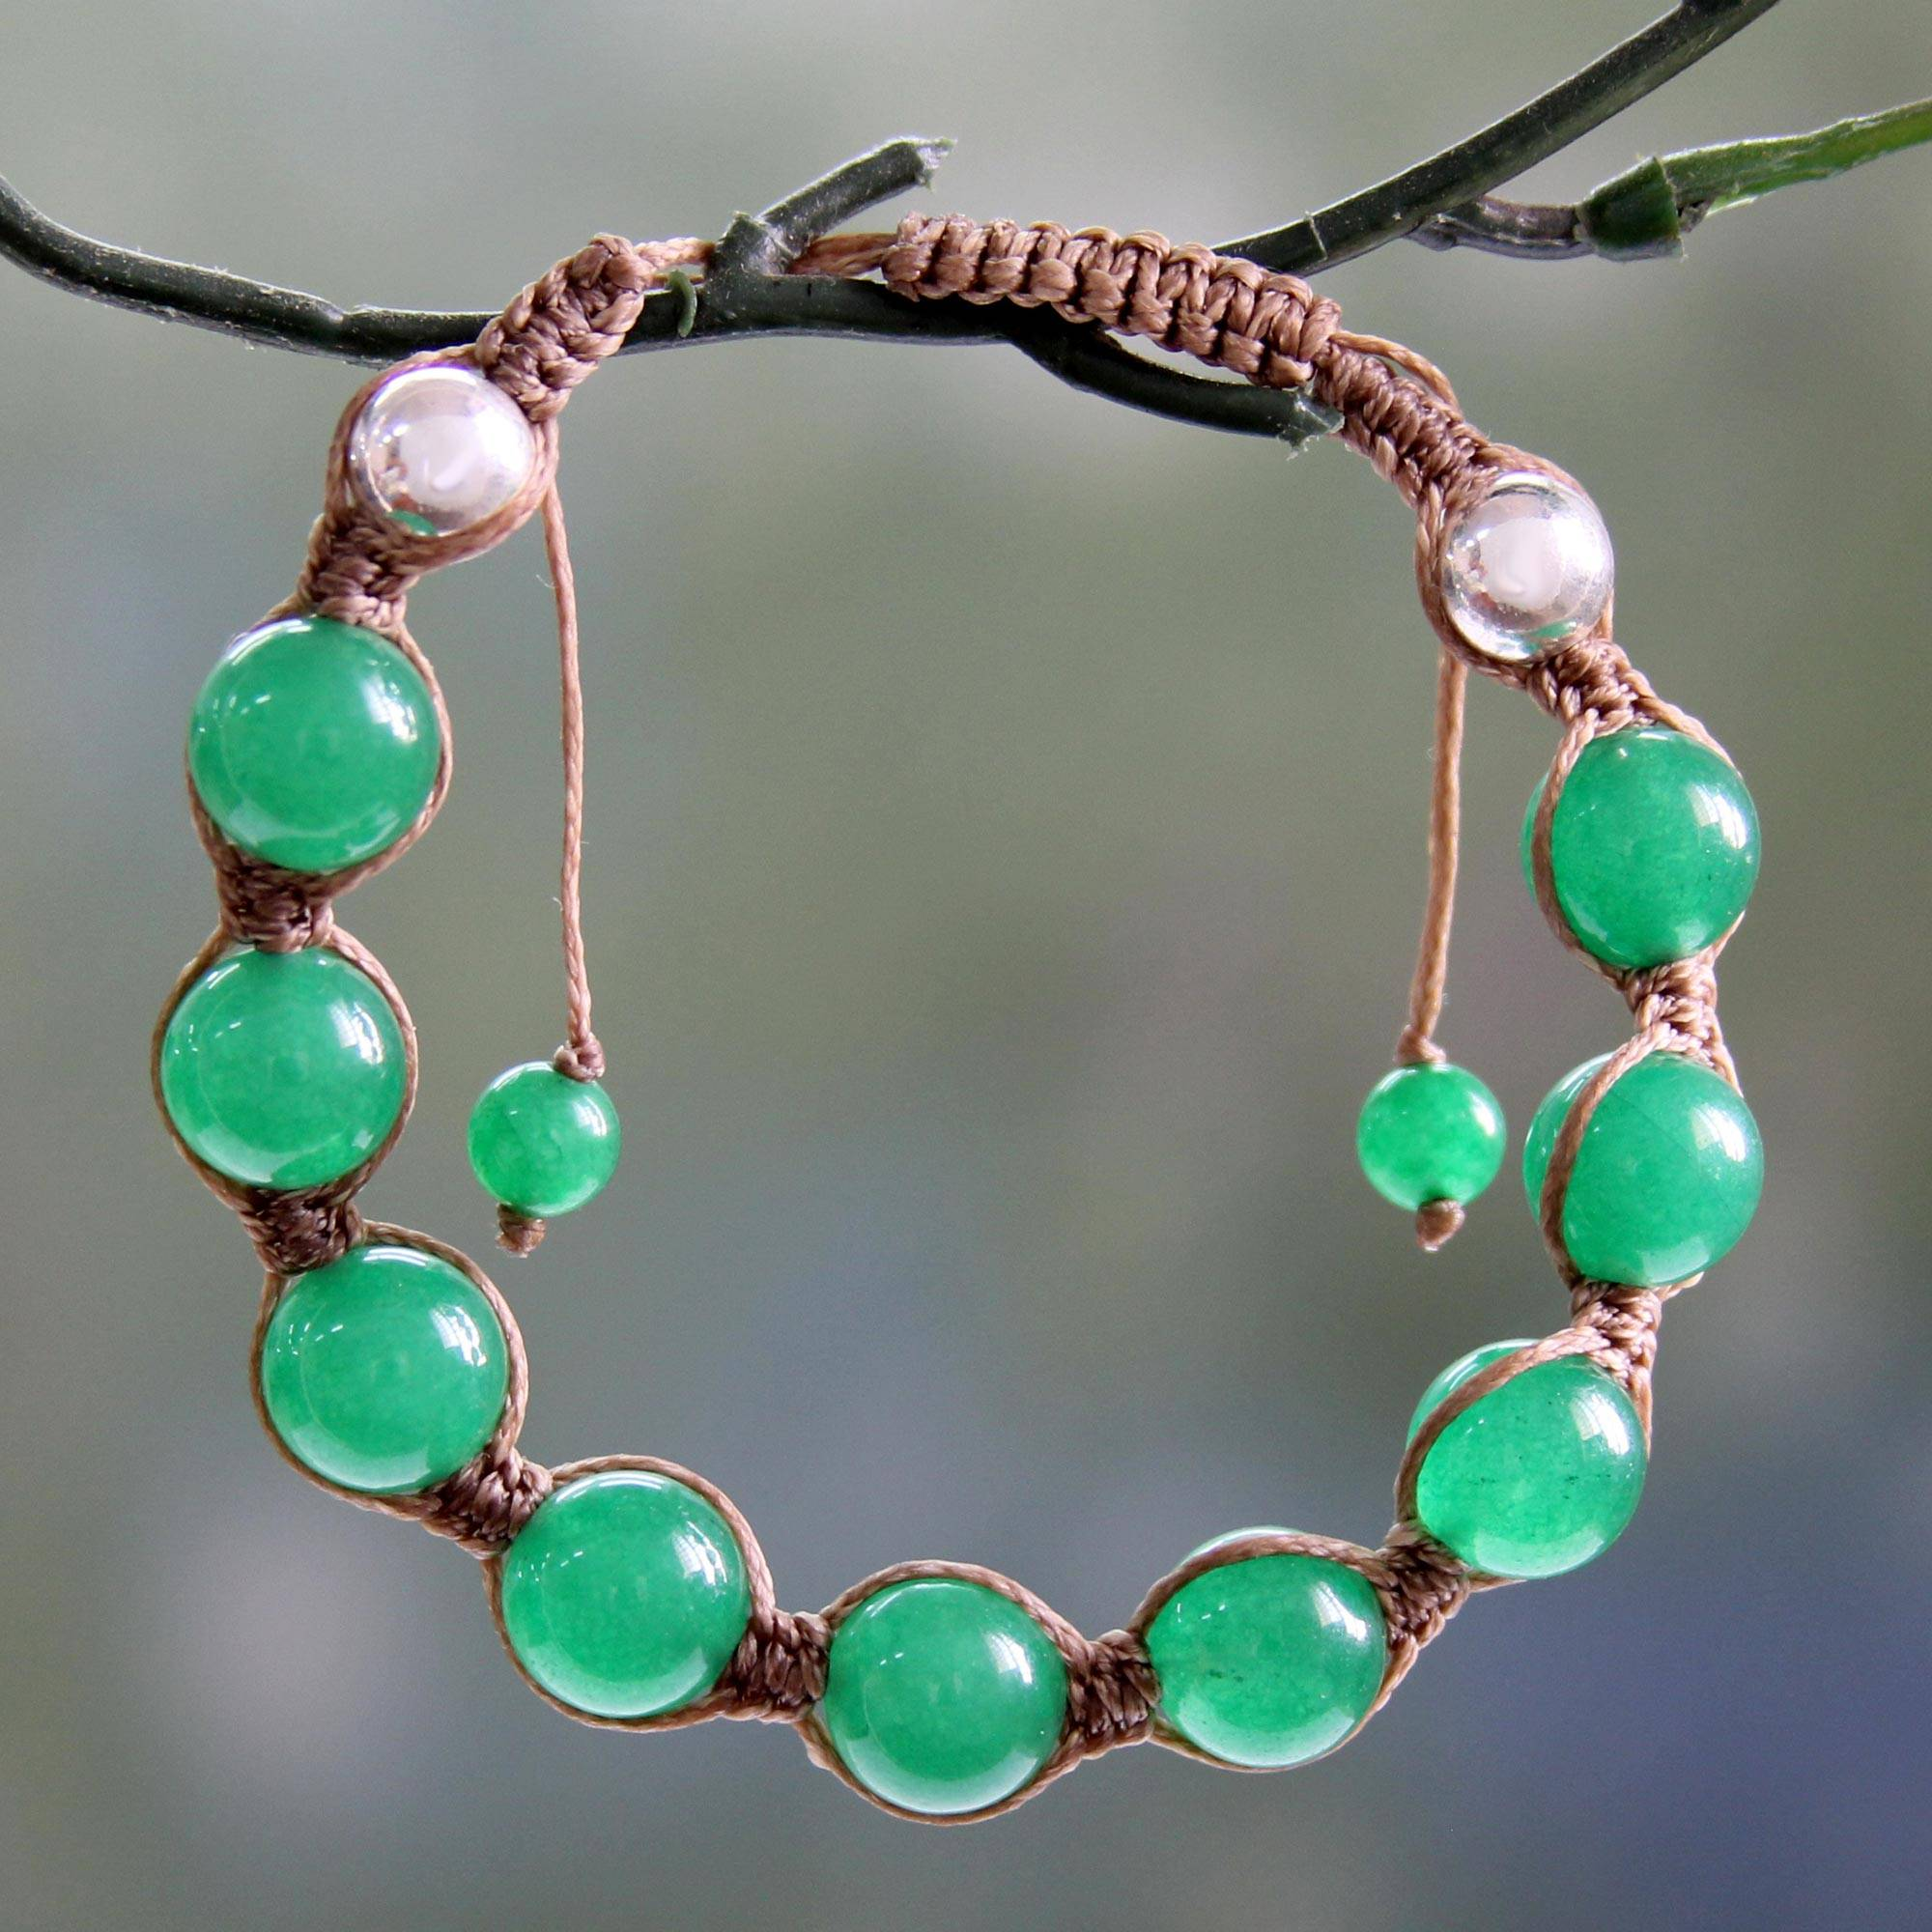 beads company himalayan product jade mala img green glass boutique tibetan